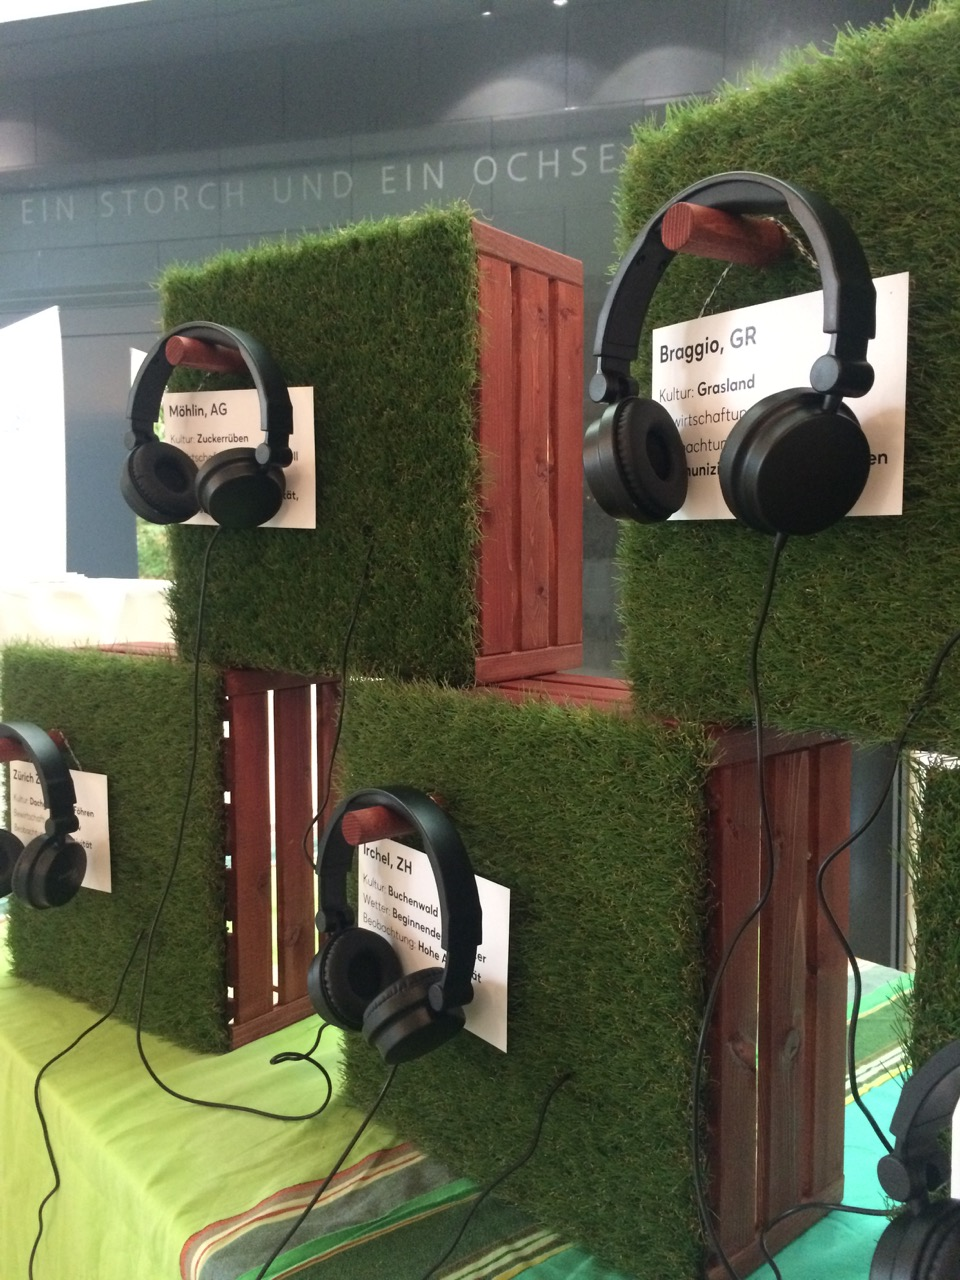 The mobile listening station consists of wooden boxes with headphones.